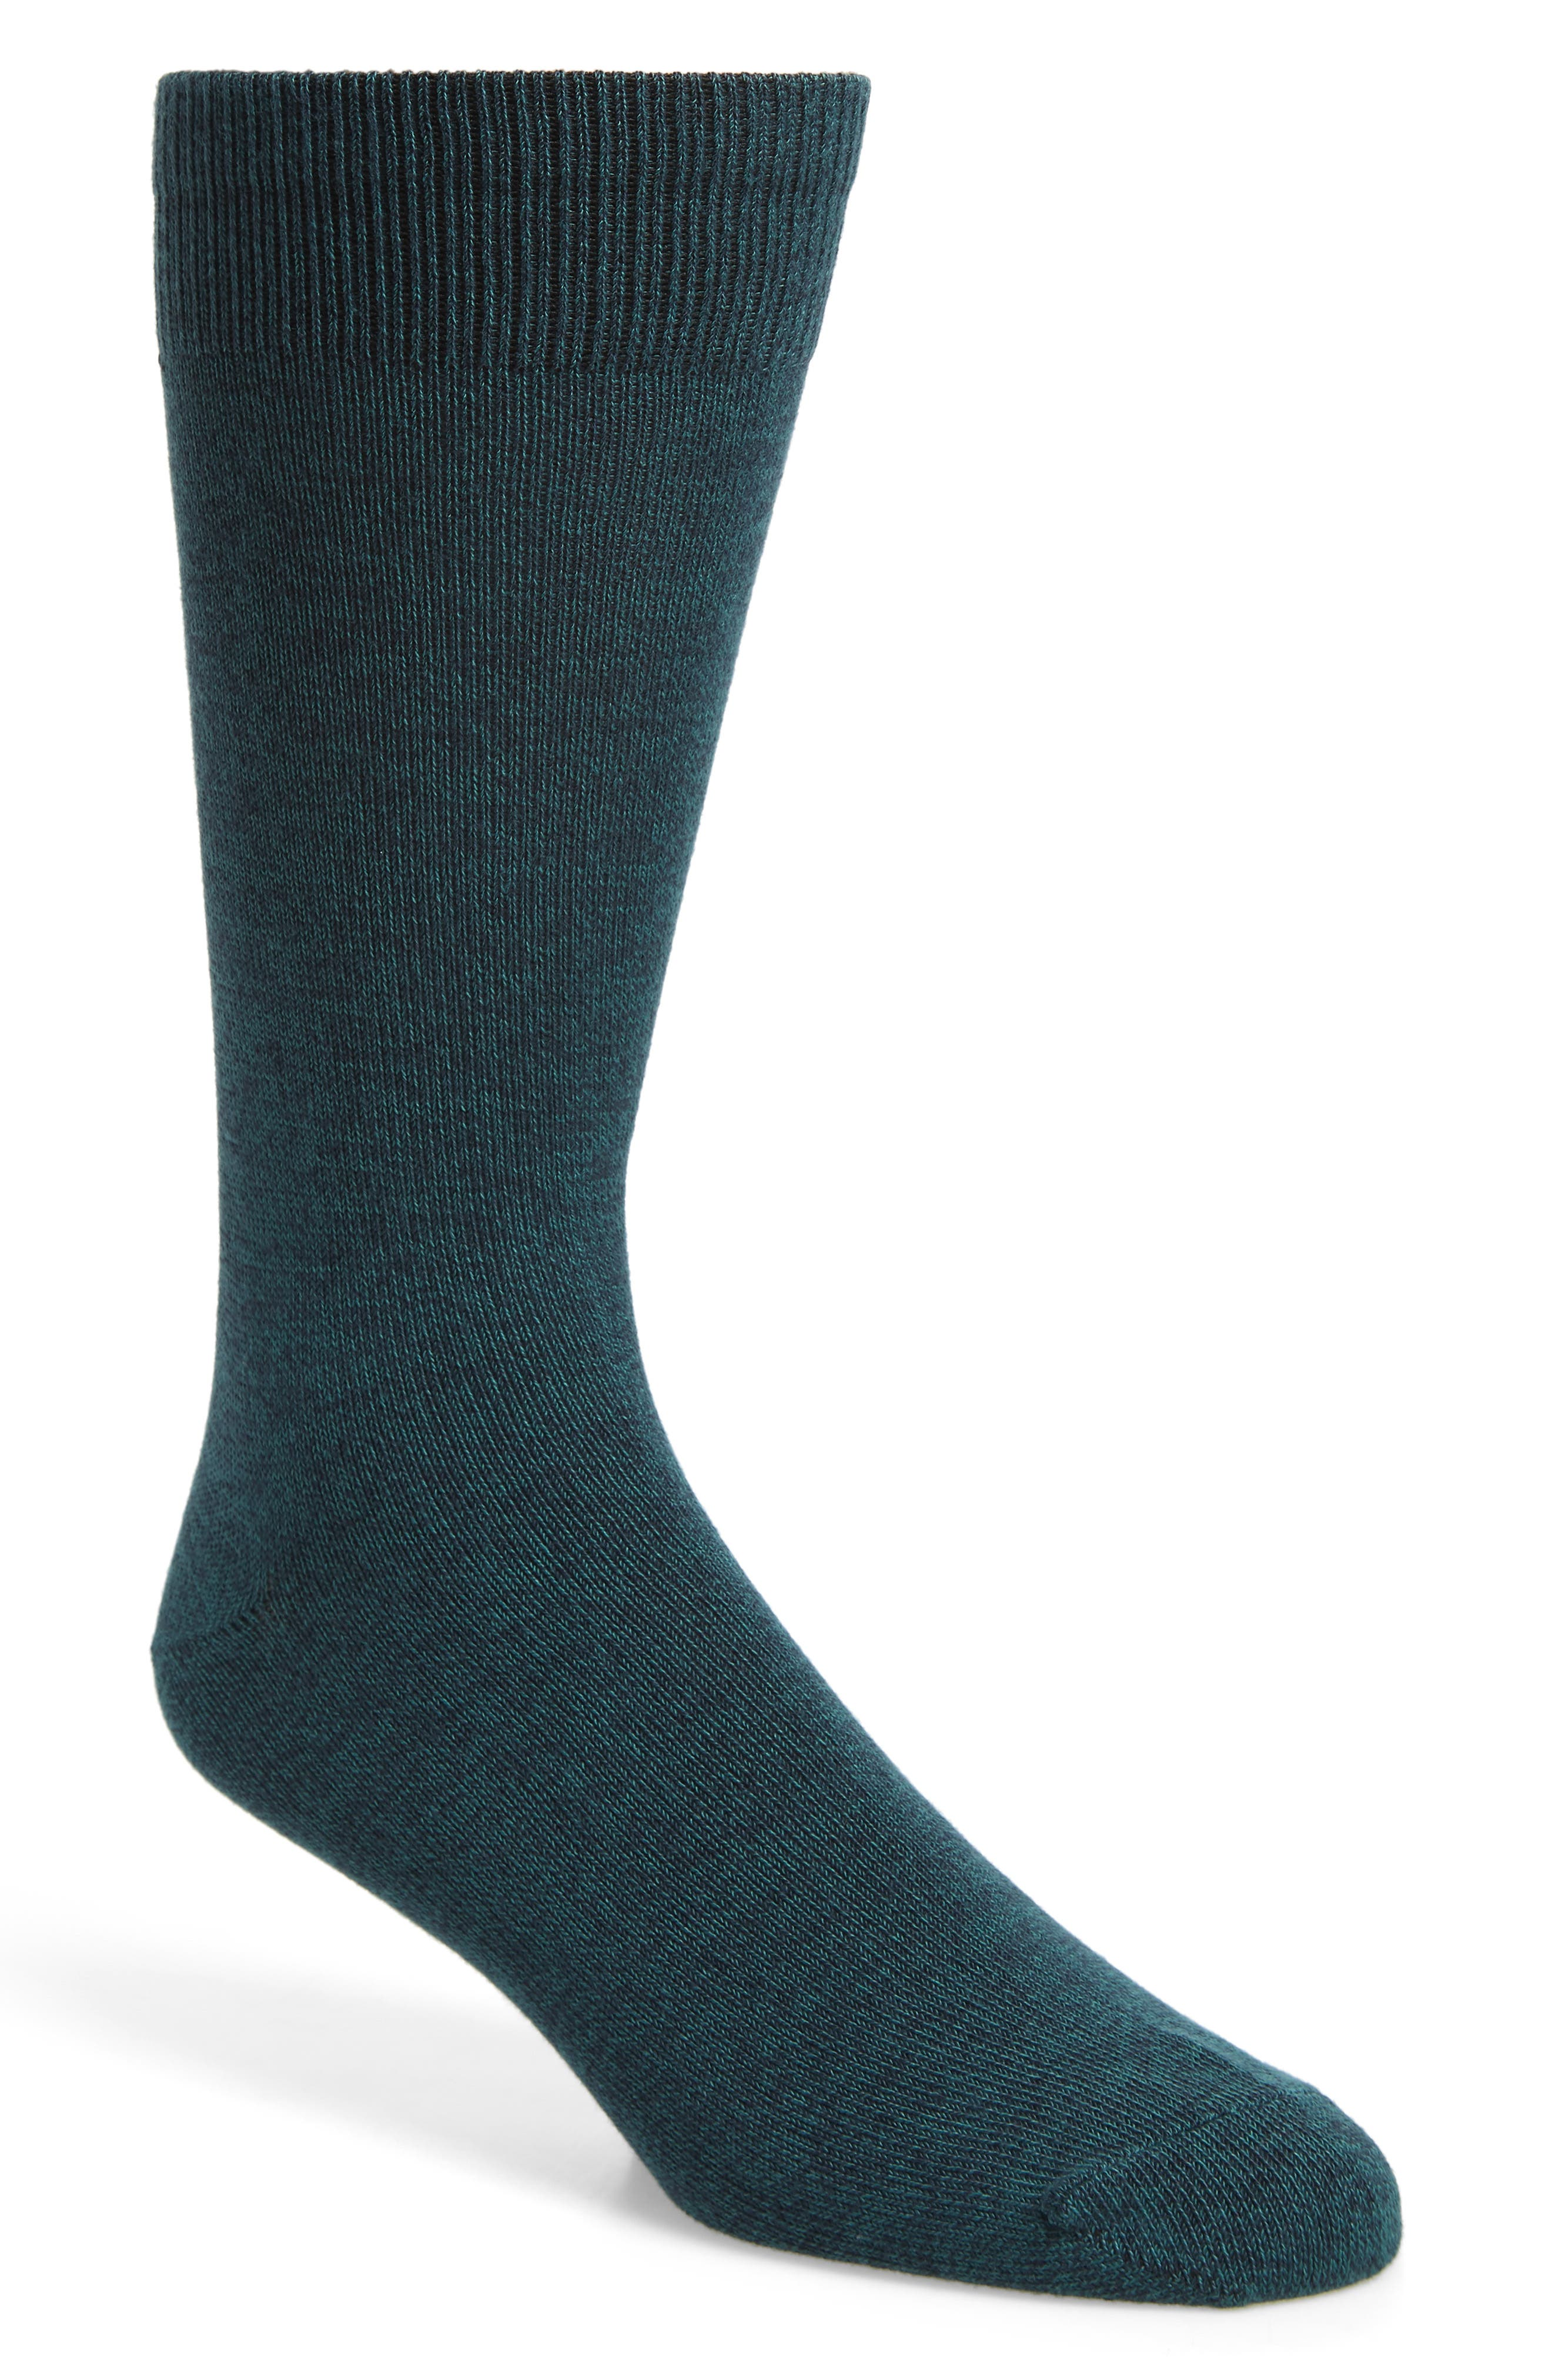 Ultrasoft Solid Socks,                             Main thumbnail 1, color,                             GREEN BISTRO